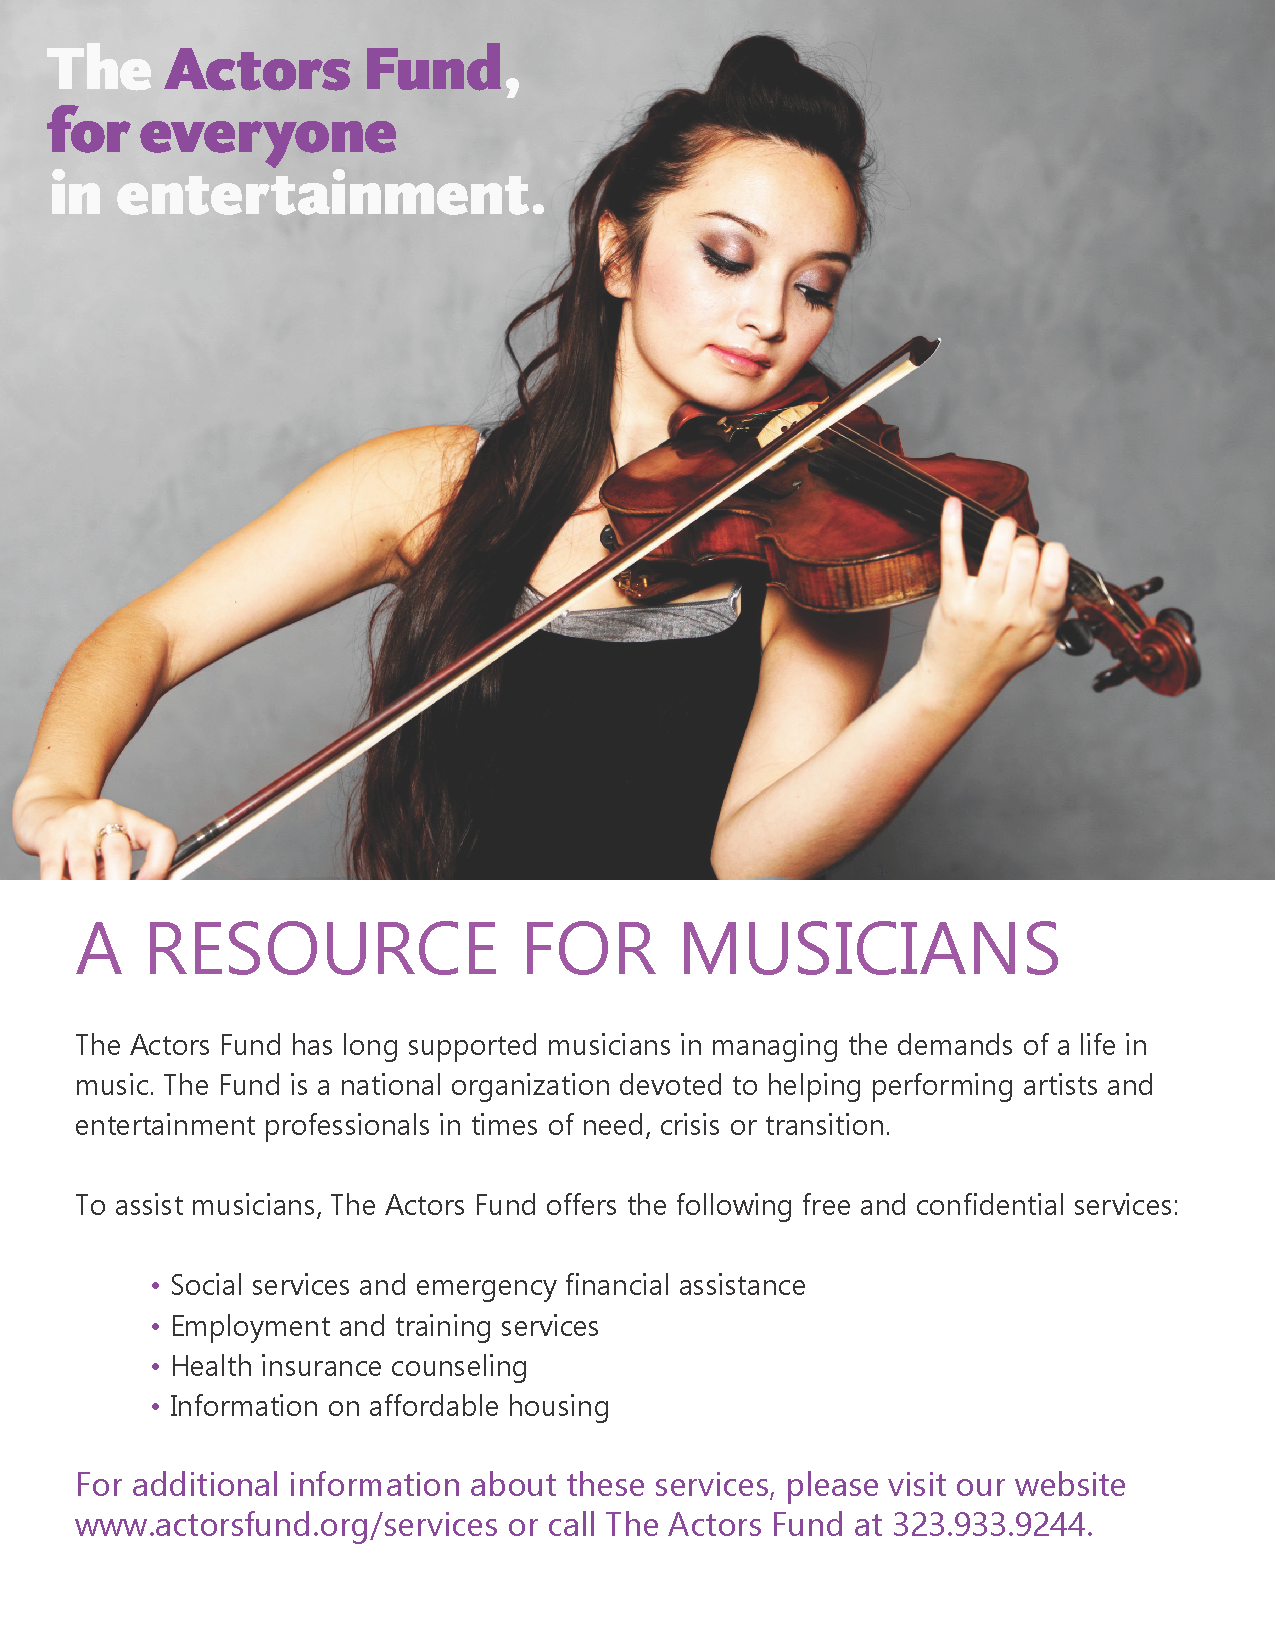 The Actors Fund - A Resource for Musicians 2